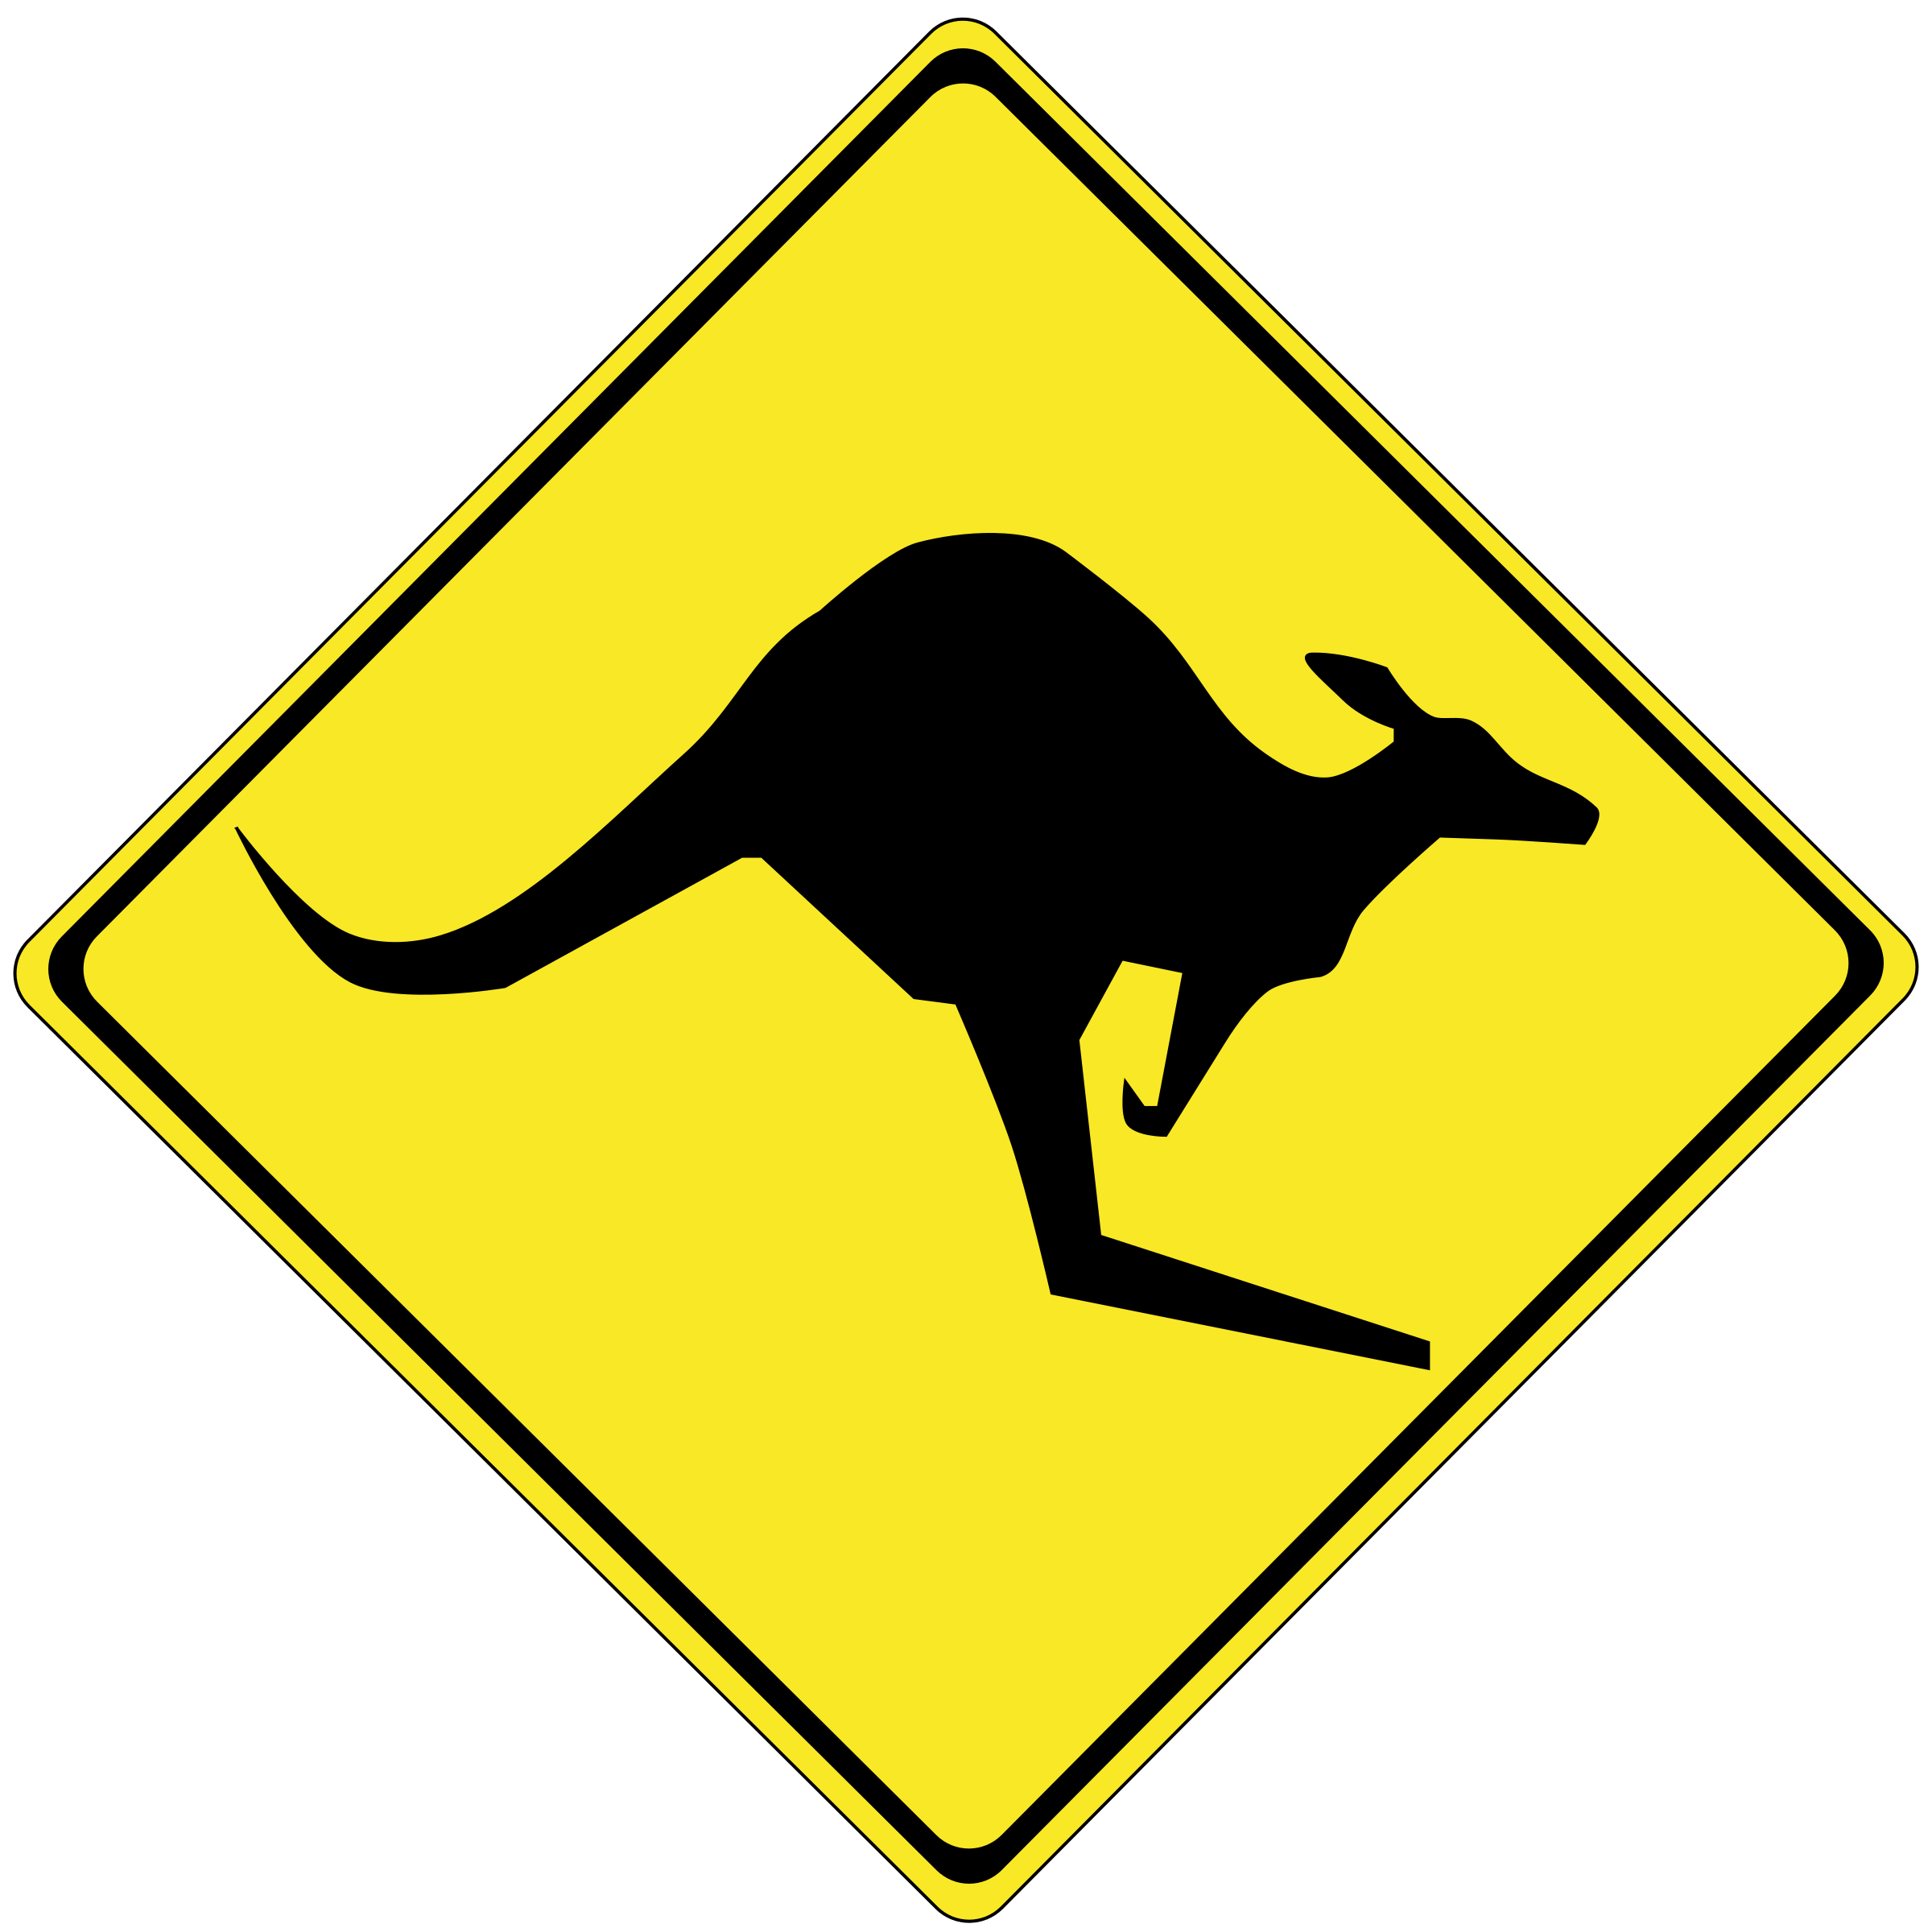 Warning kangaroos ahead by stryker